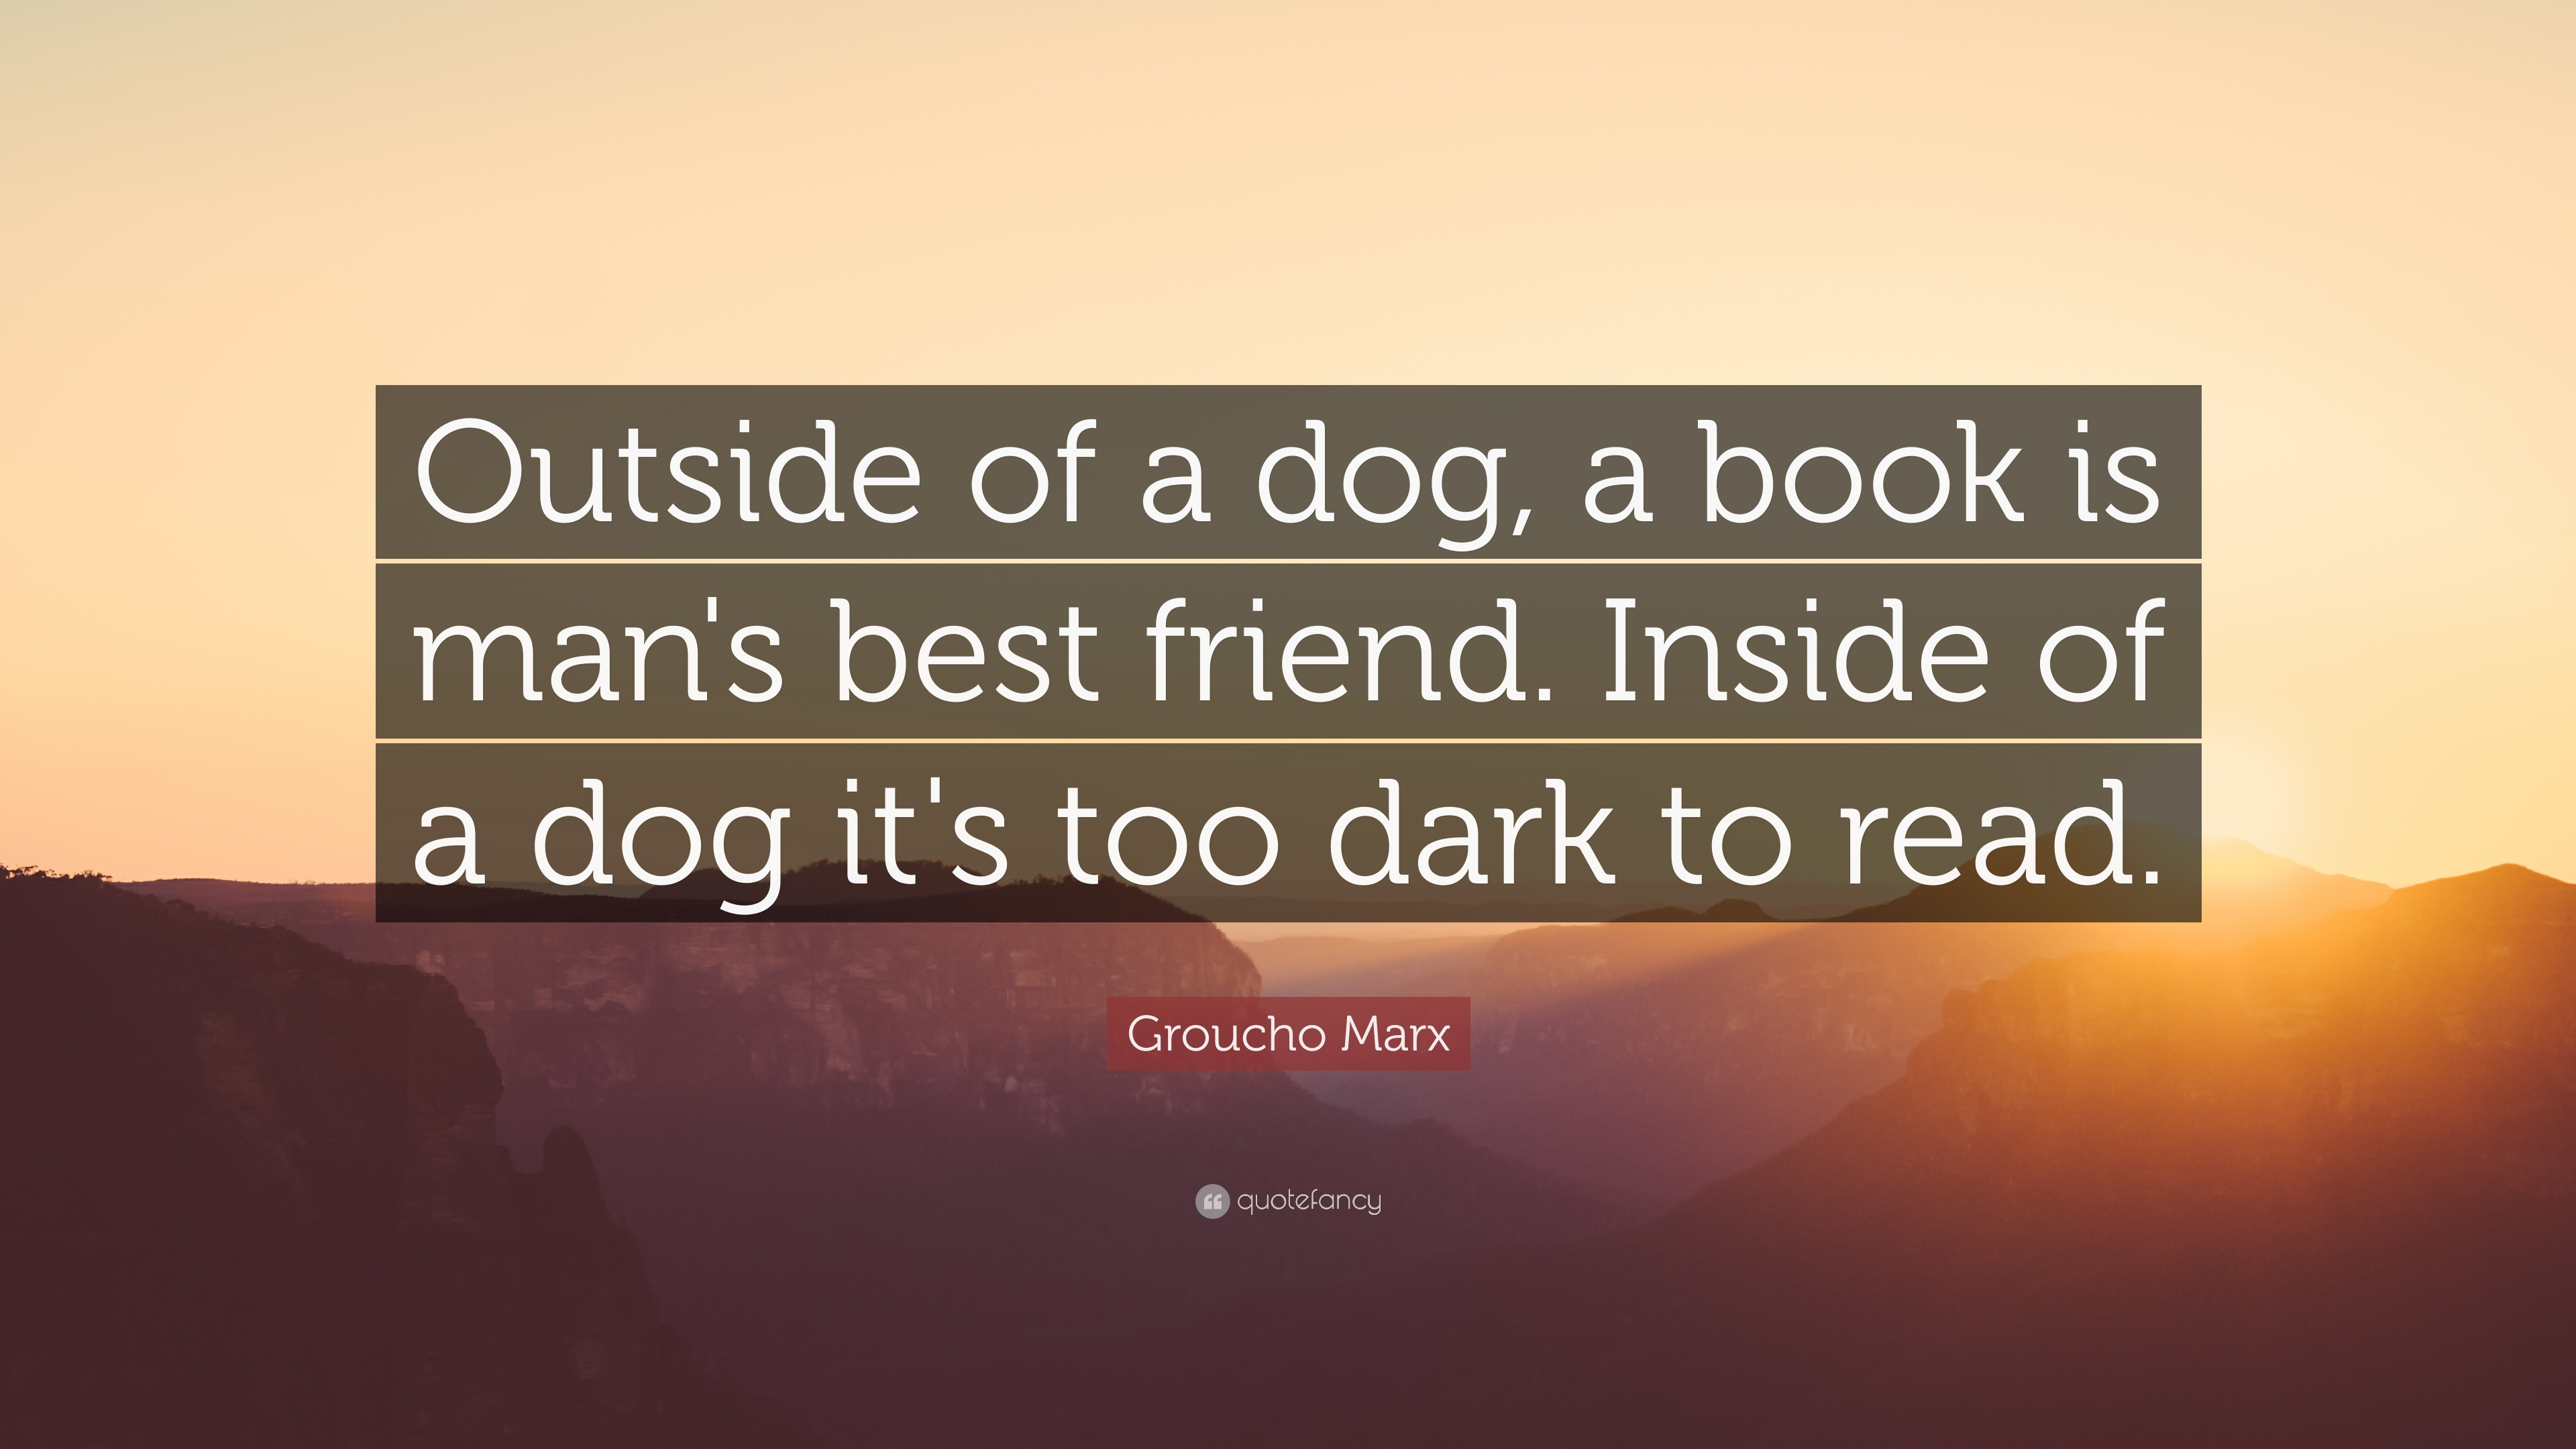 The meaning and origin of the expression: Man's best friend